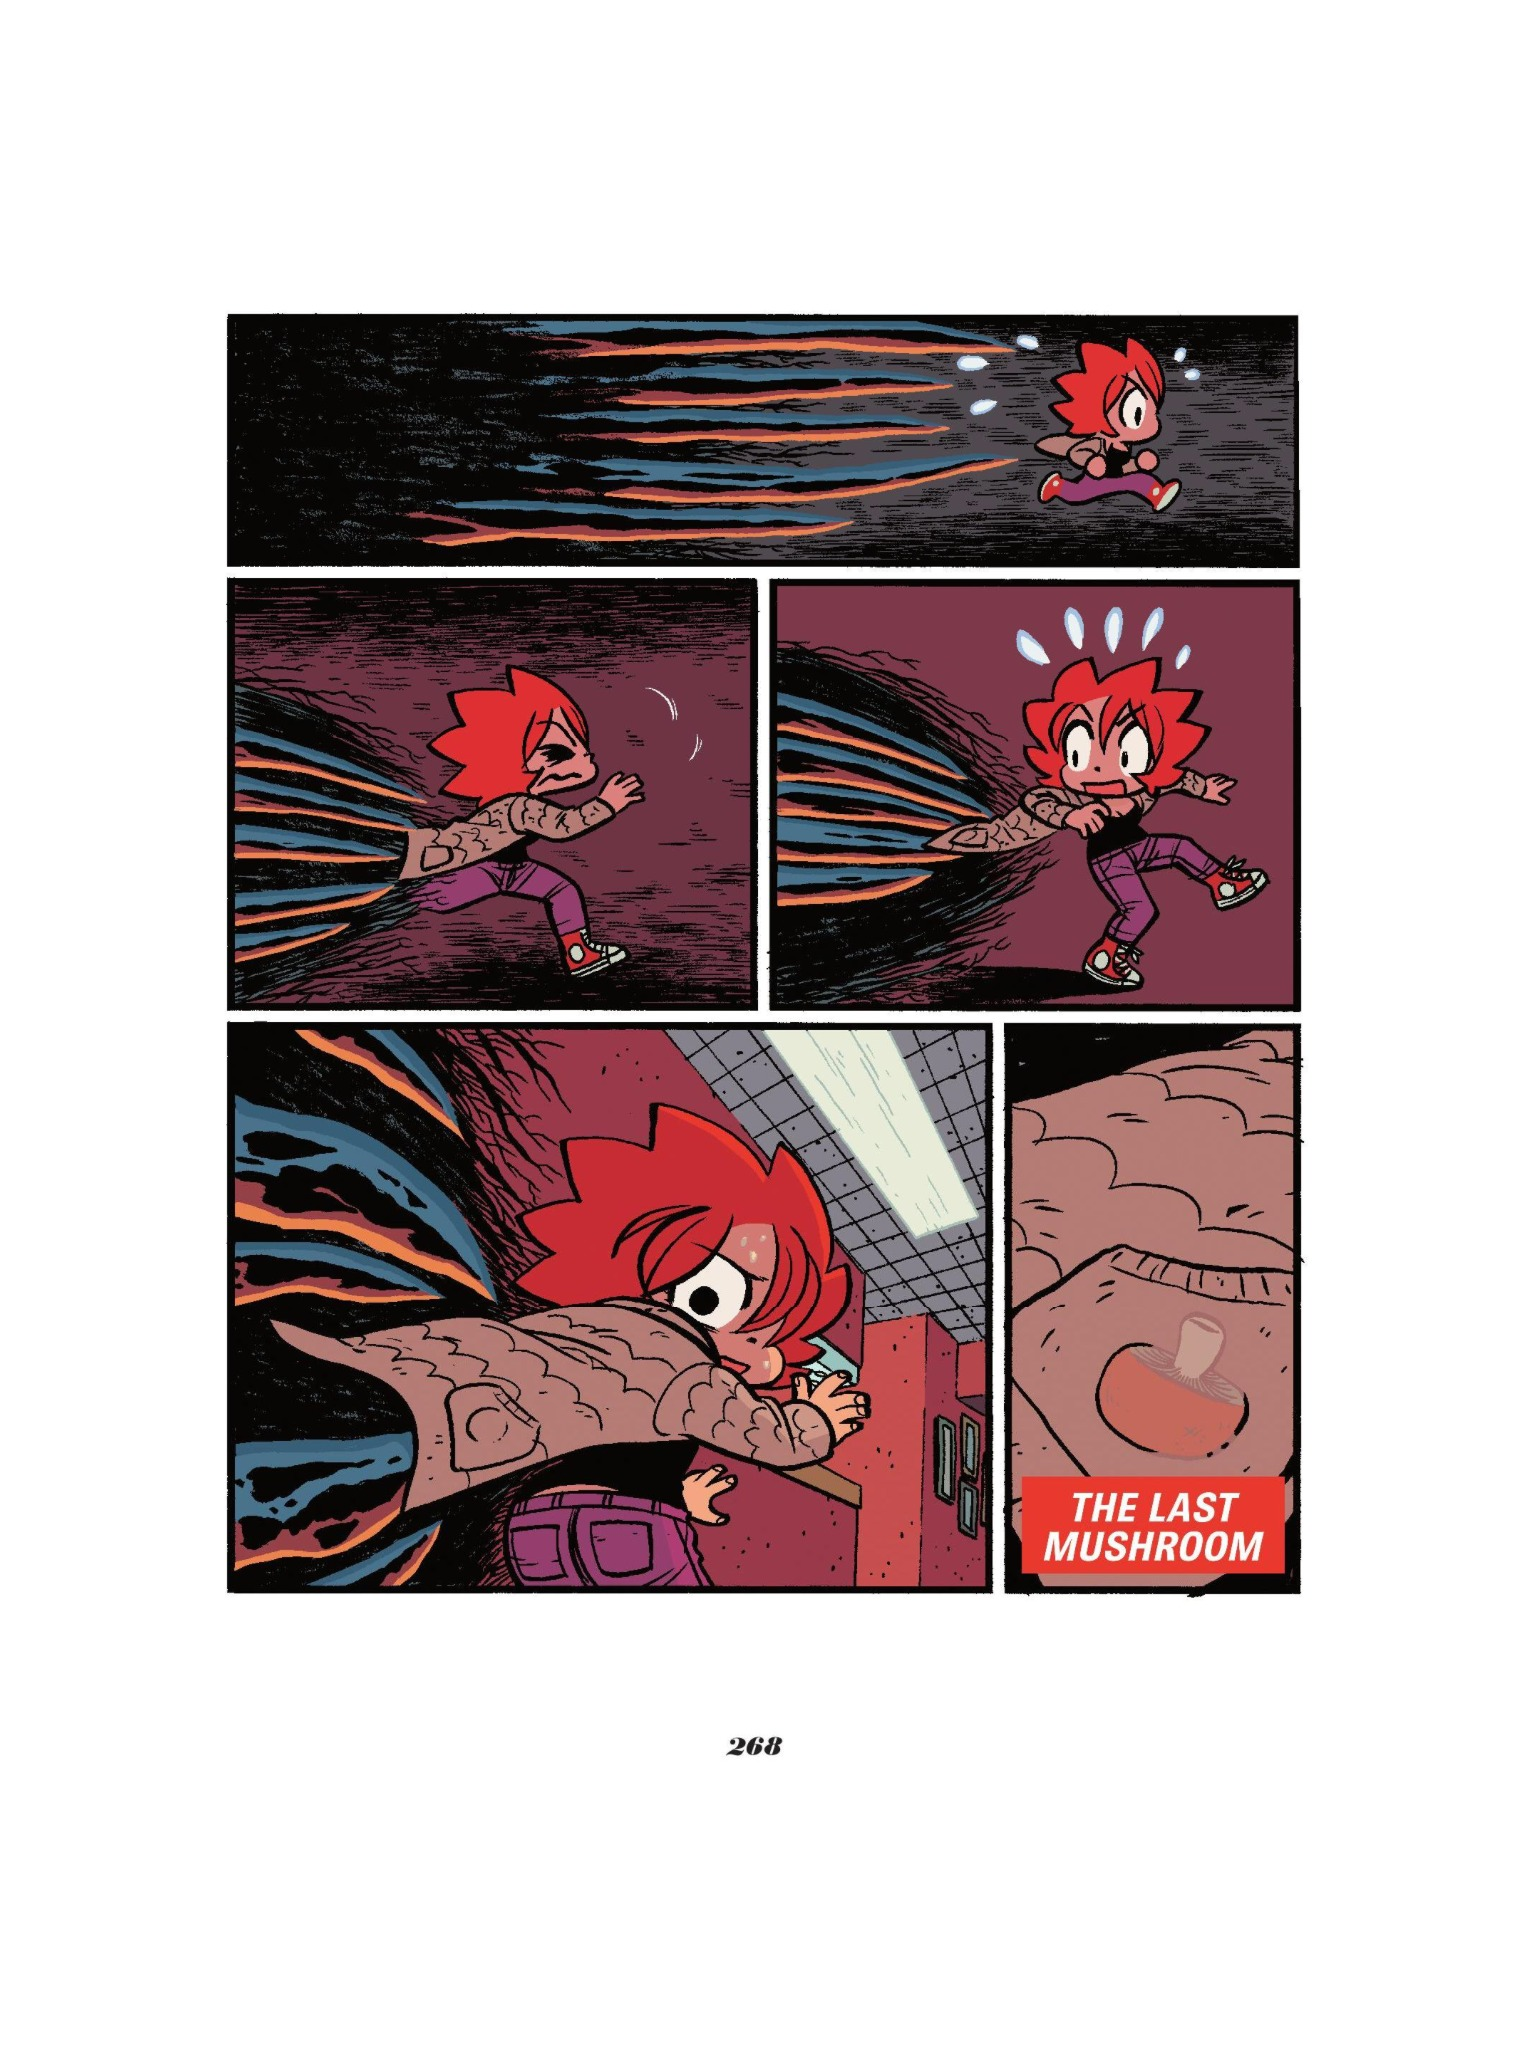 Read online Seconds comic -  Issue # Full - 268